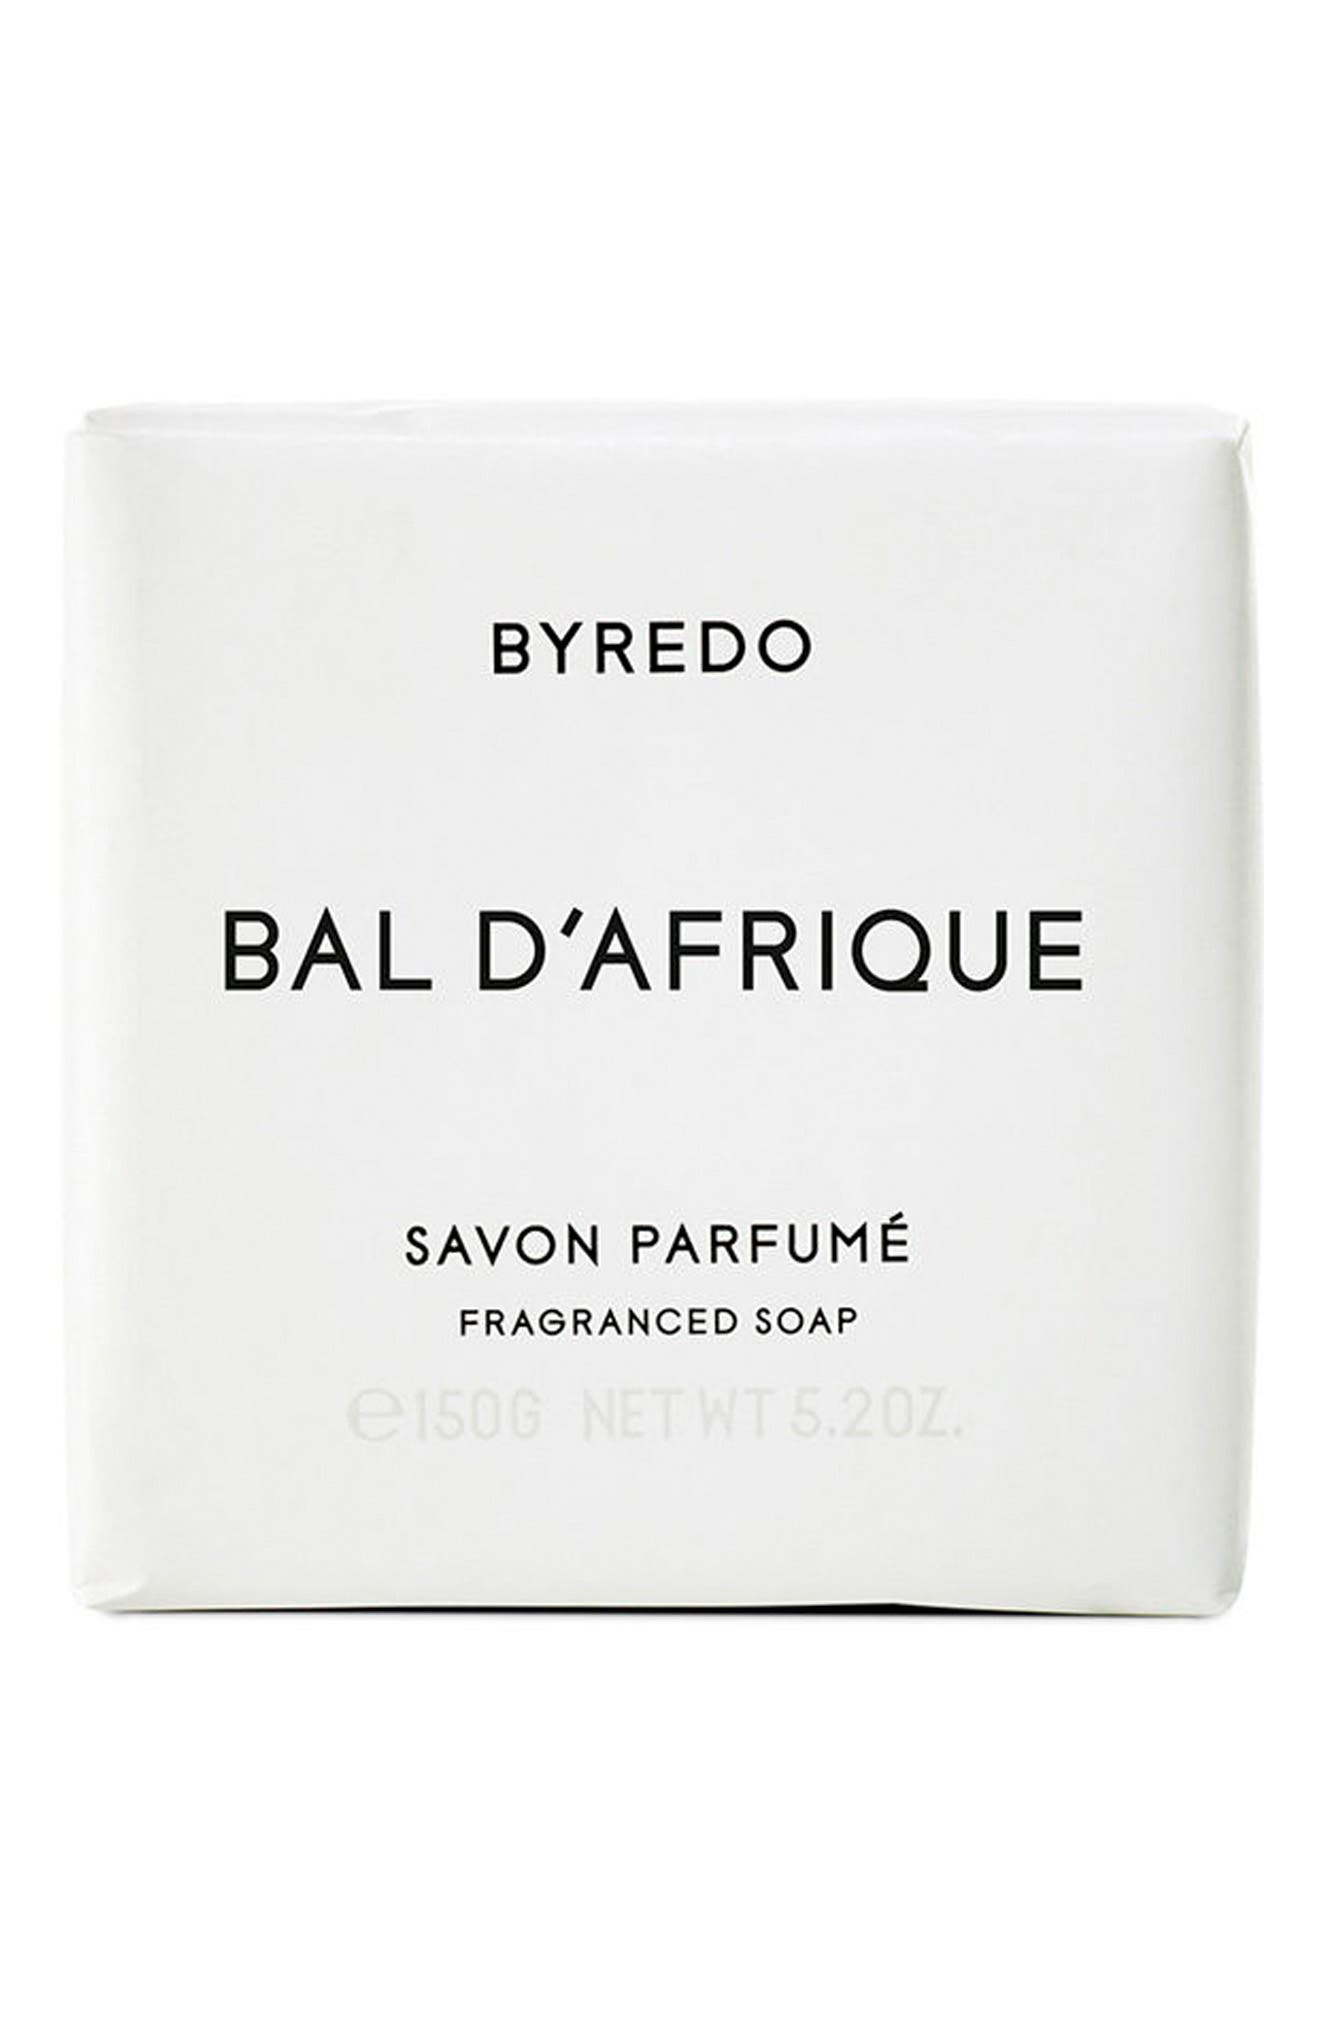 Bal d'Afrique Soap Bar,                         Main,                         color, 000